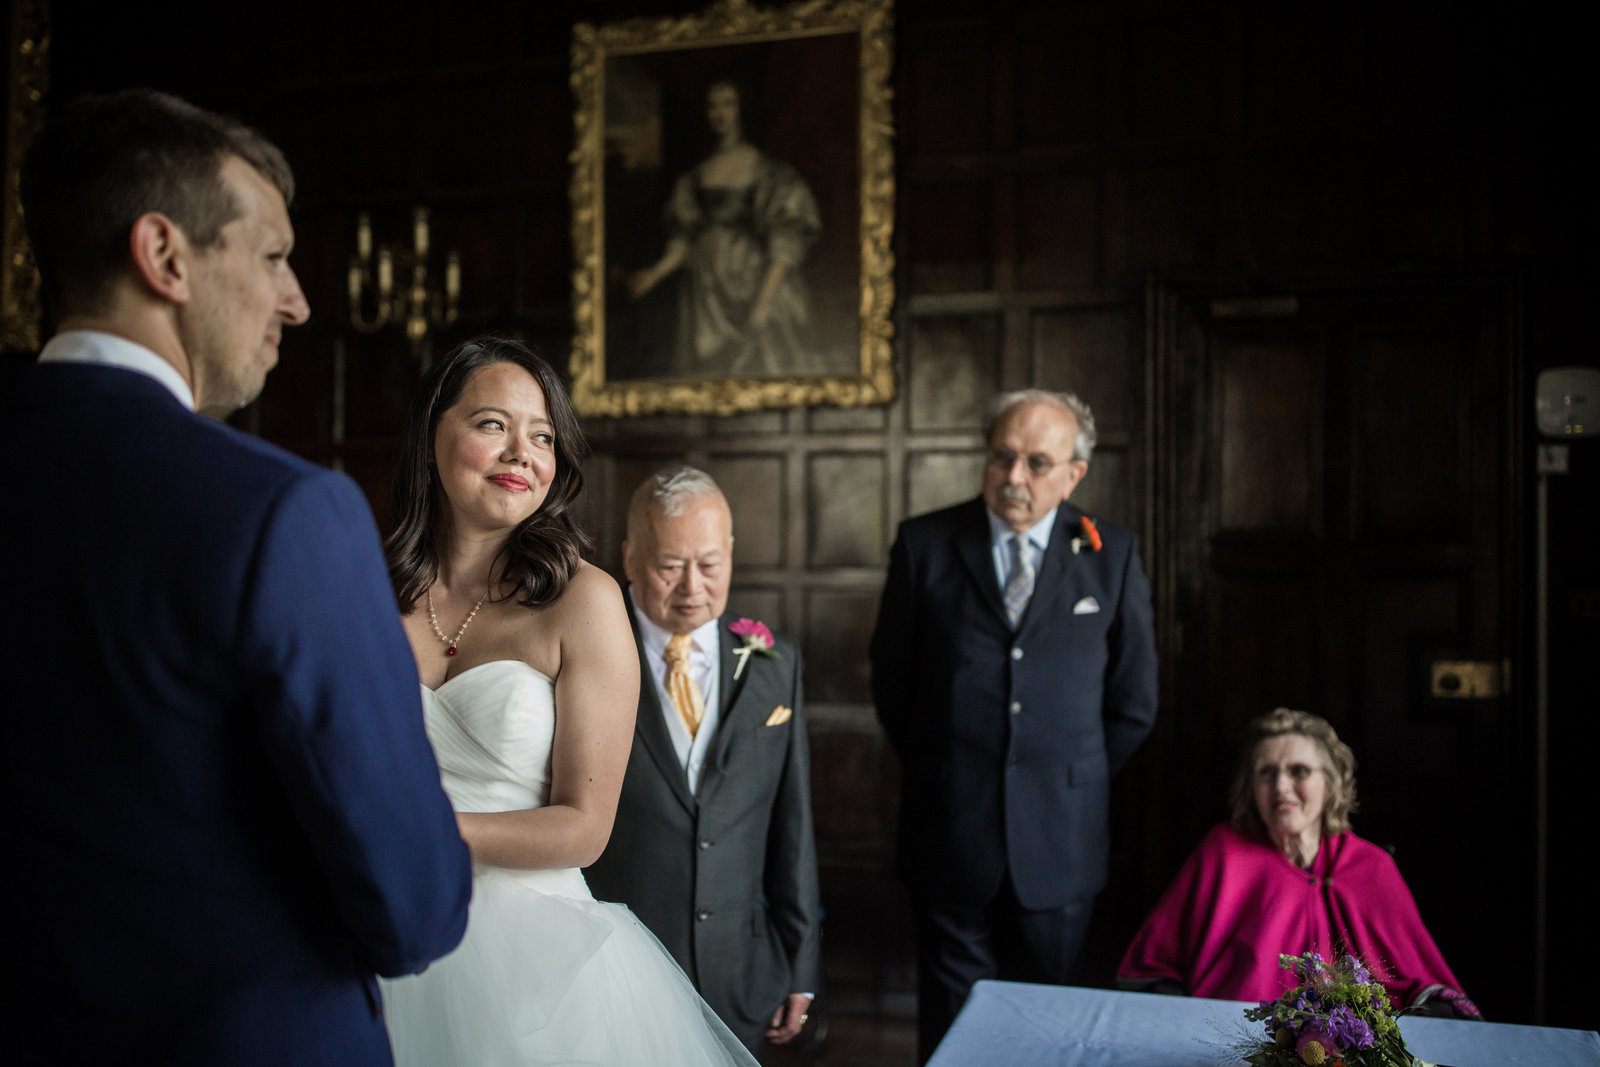 Bride and Groom marry in front of the registrar in a stately home in Norfolk whilst their elderly parents look on.